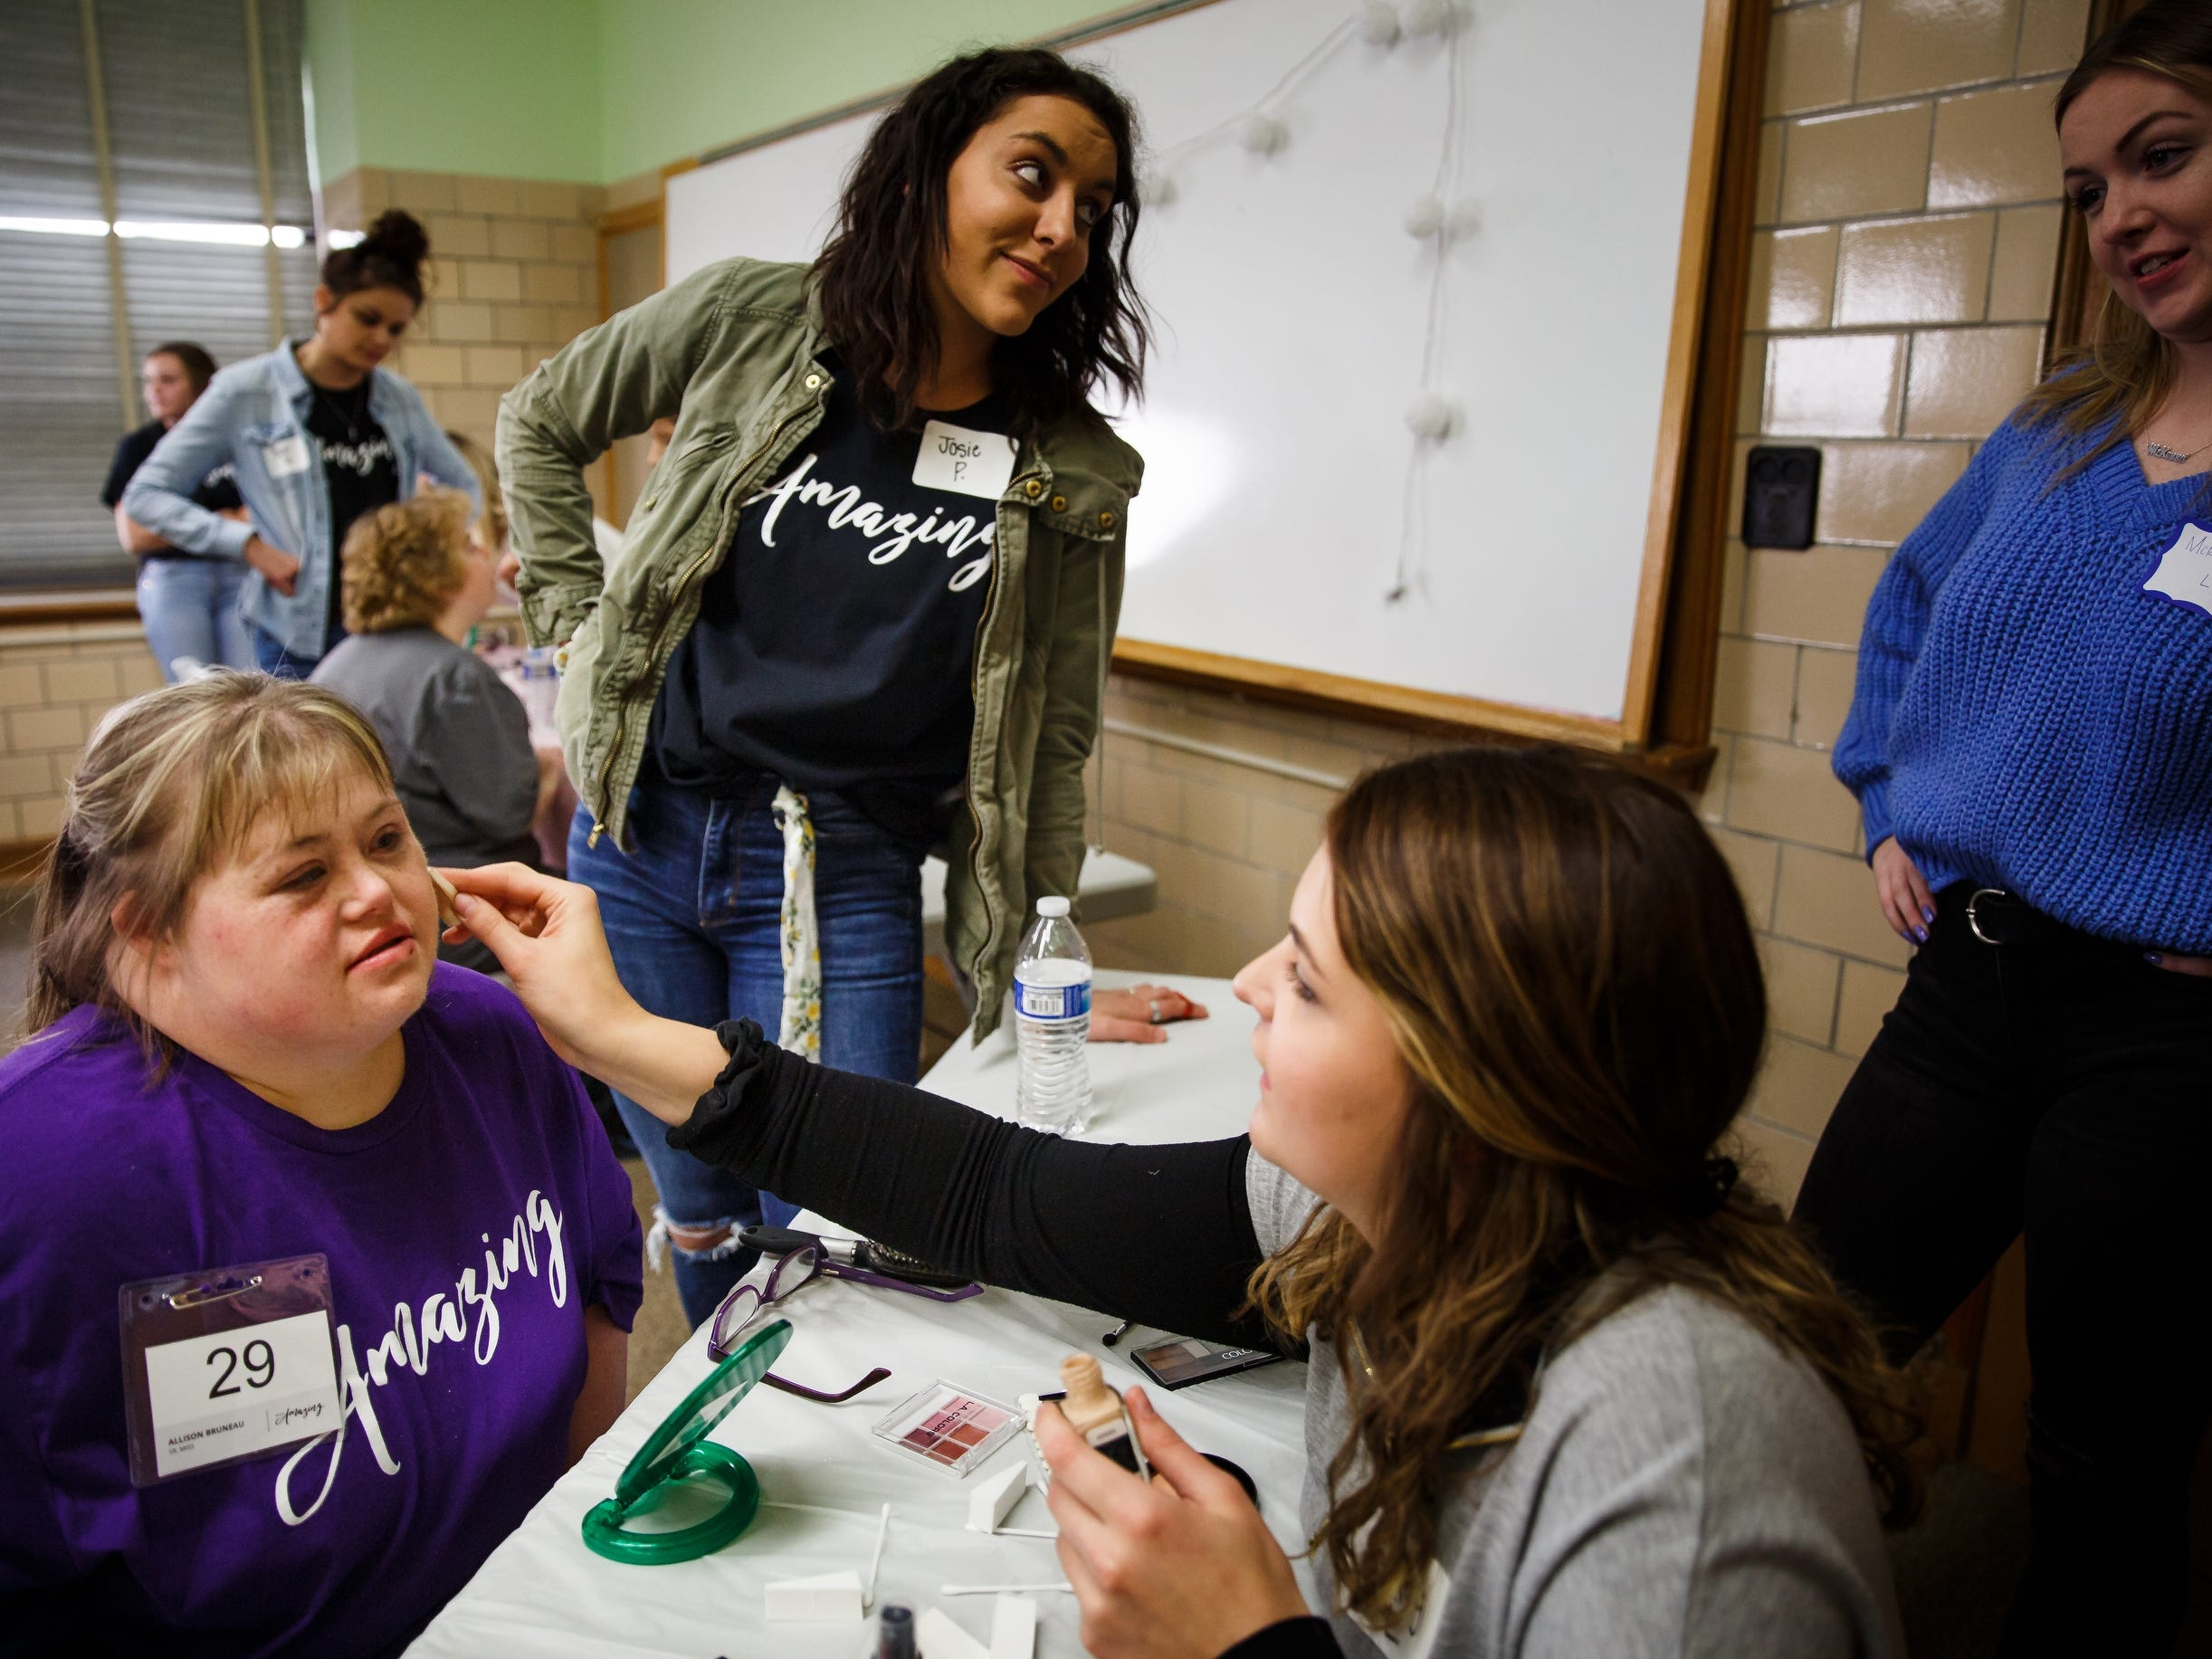 Allison Bruneau has her makeup done before the 2019 Miss Amazing pageant at Franklin Jr. High School on Saturday, April 13, 2019, in Des Moines. The event started in 2013 and gives women with disabilities the opportunity to learn new skills and build confidence while adding in some friendly competition.